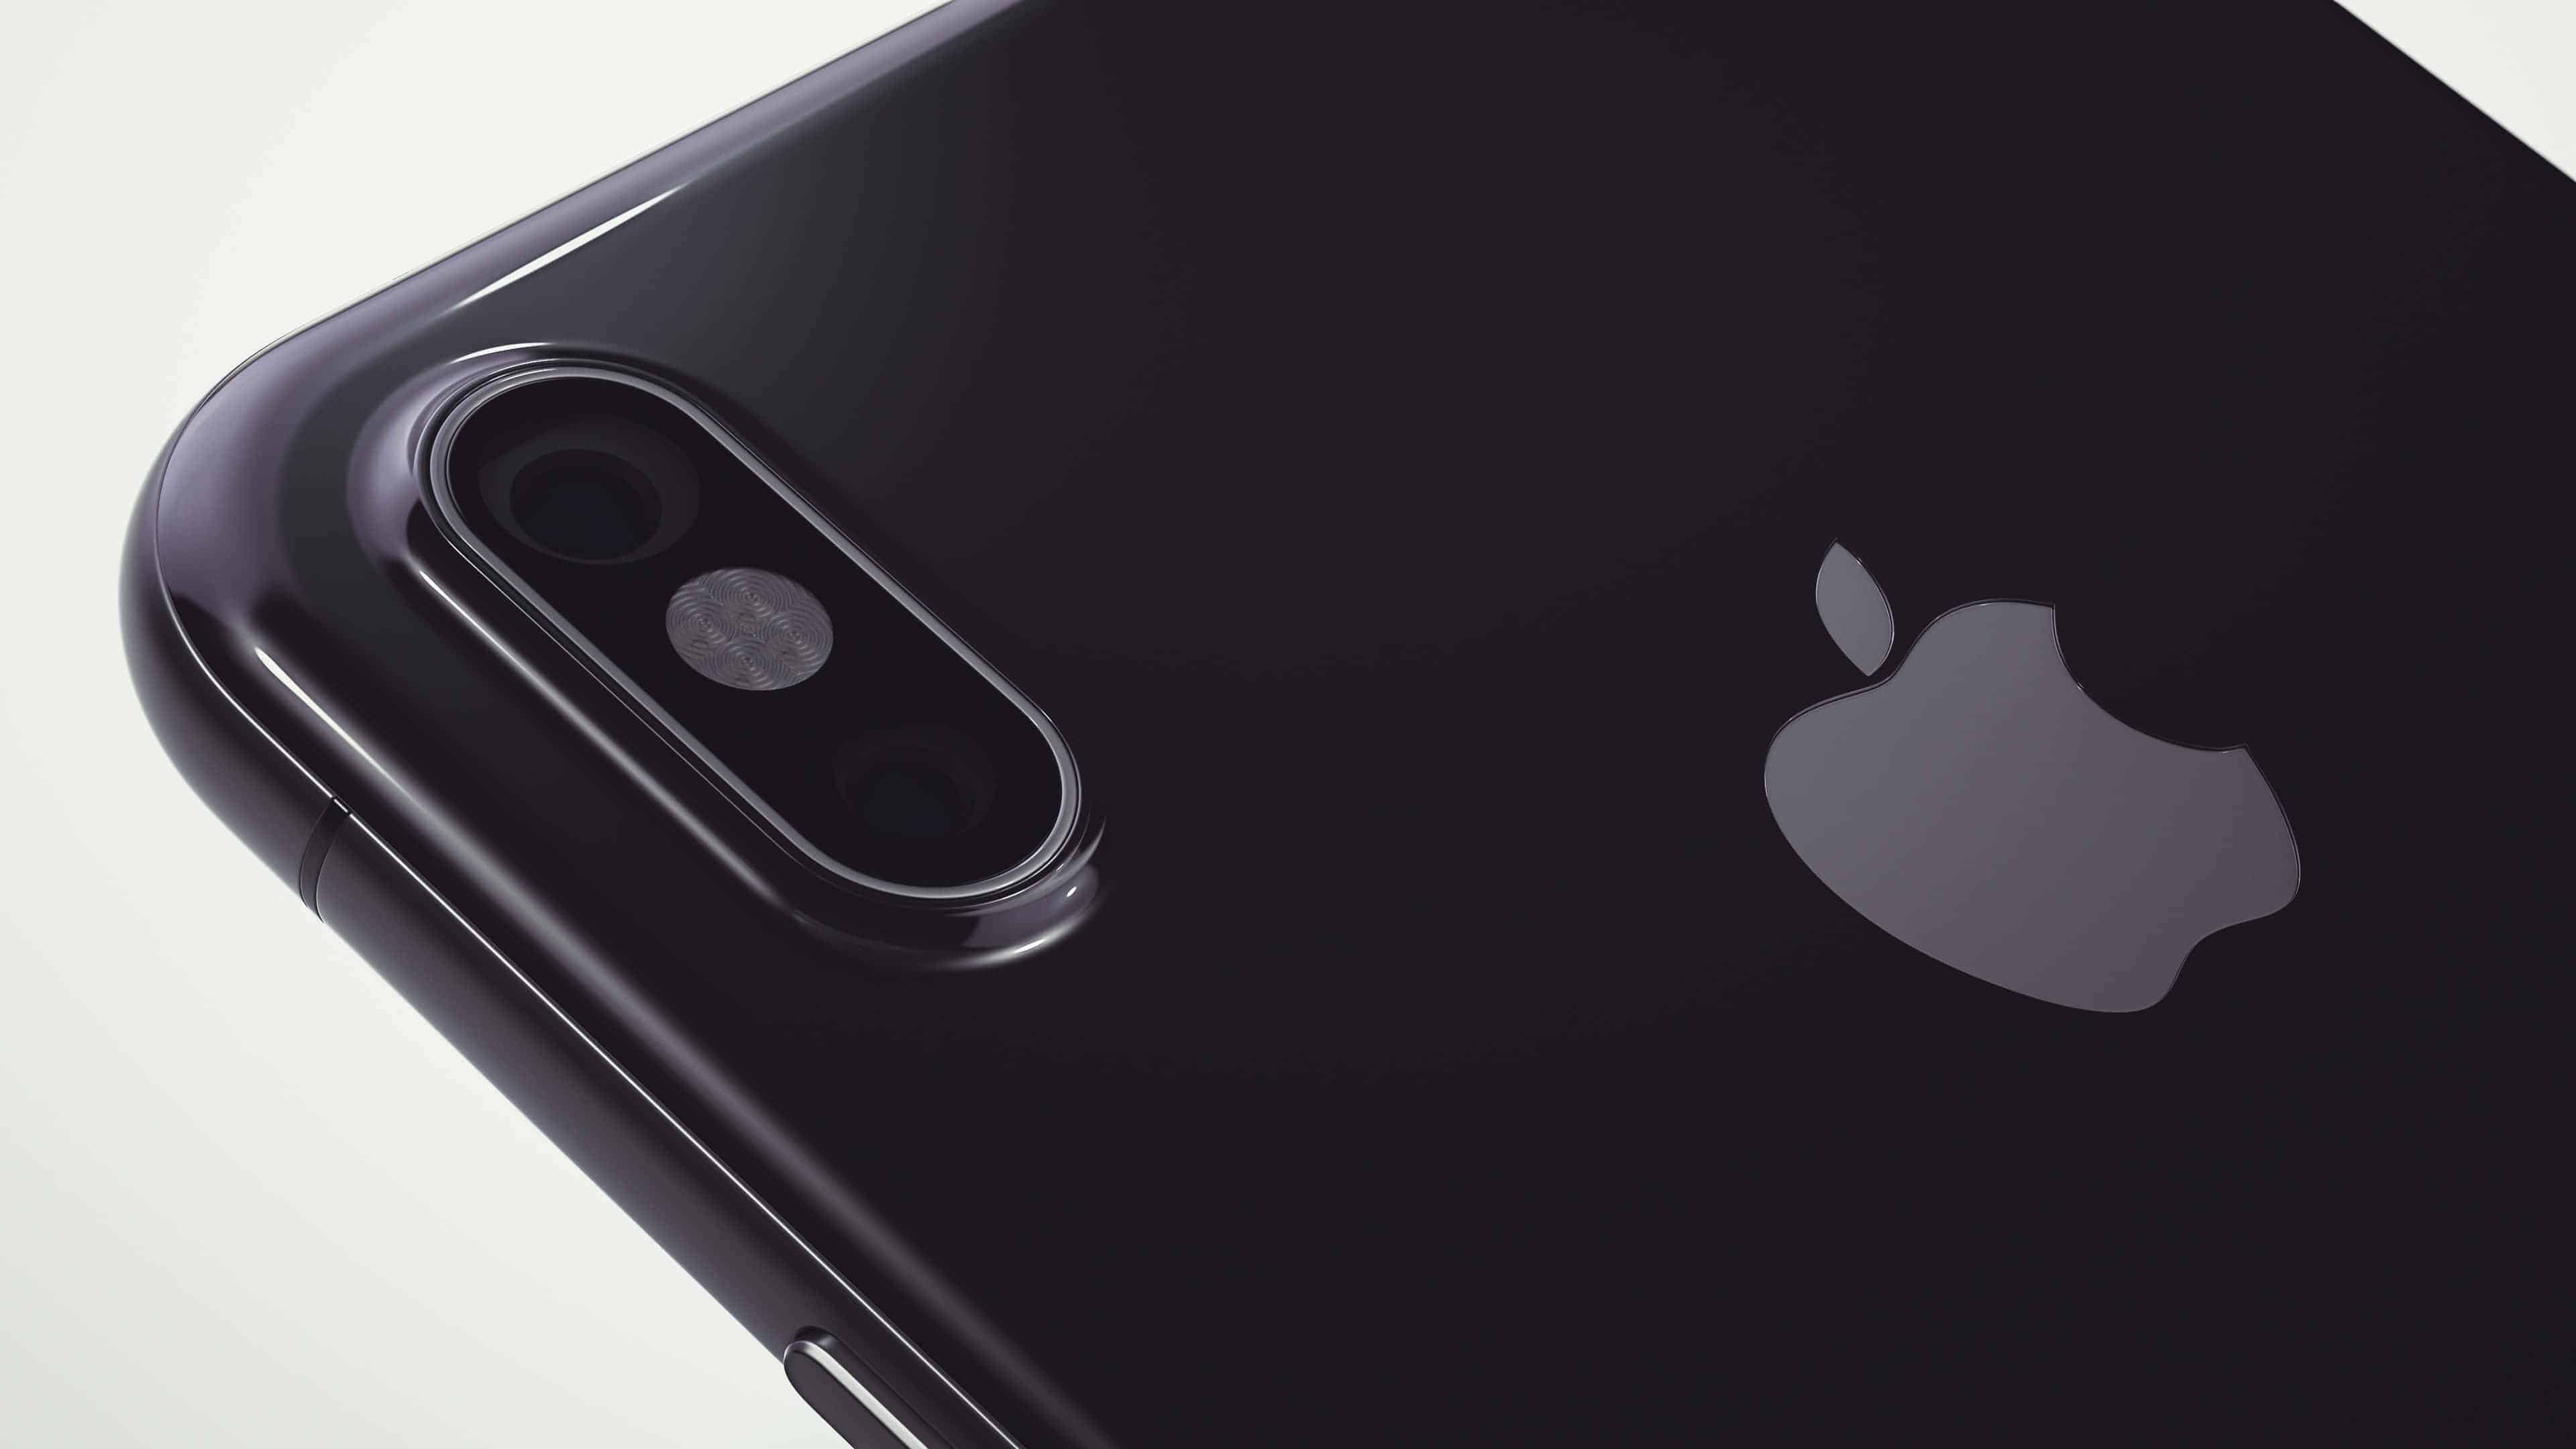 apple iphone 8 black back uhd 4k wallpaper